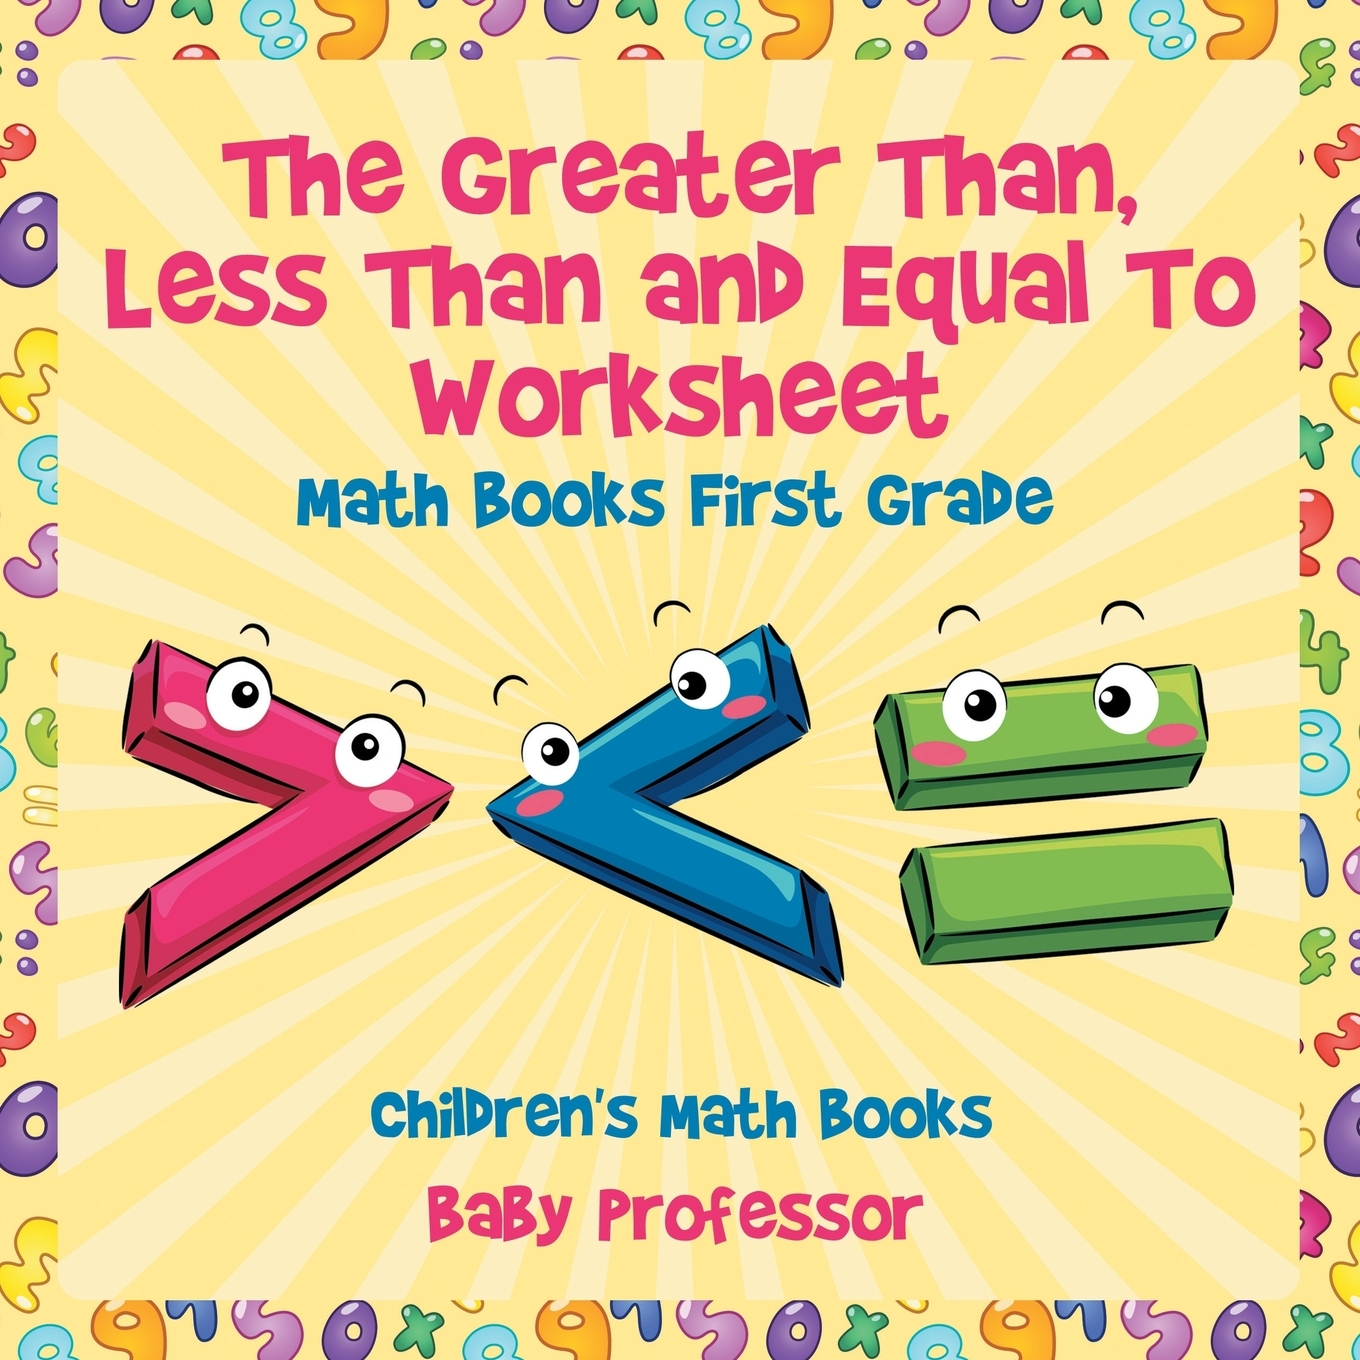 The Greater Than Less Than And Equal To Worksheet